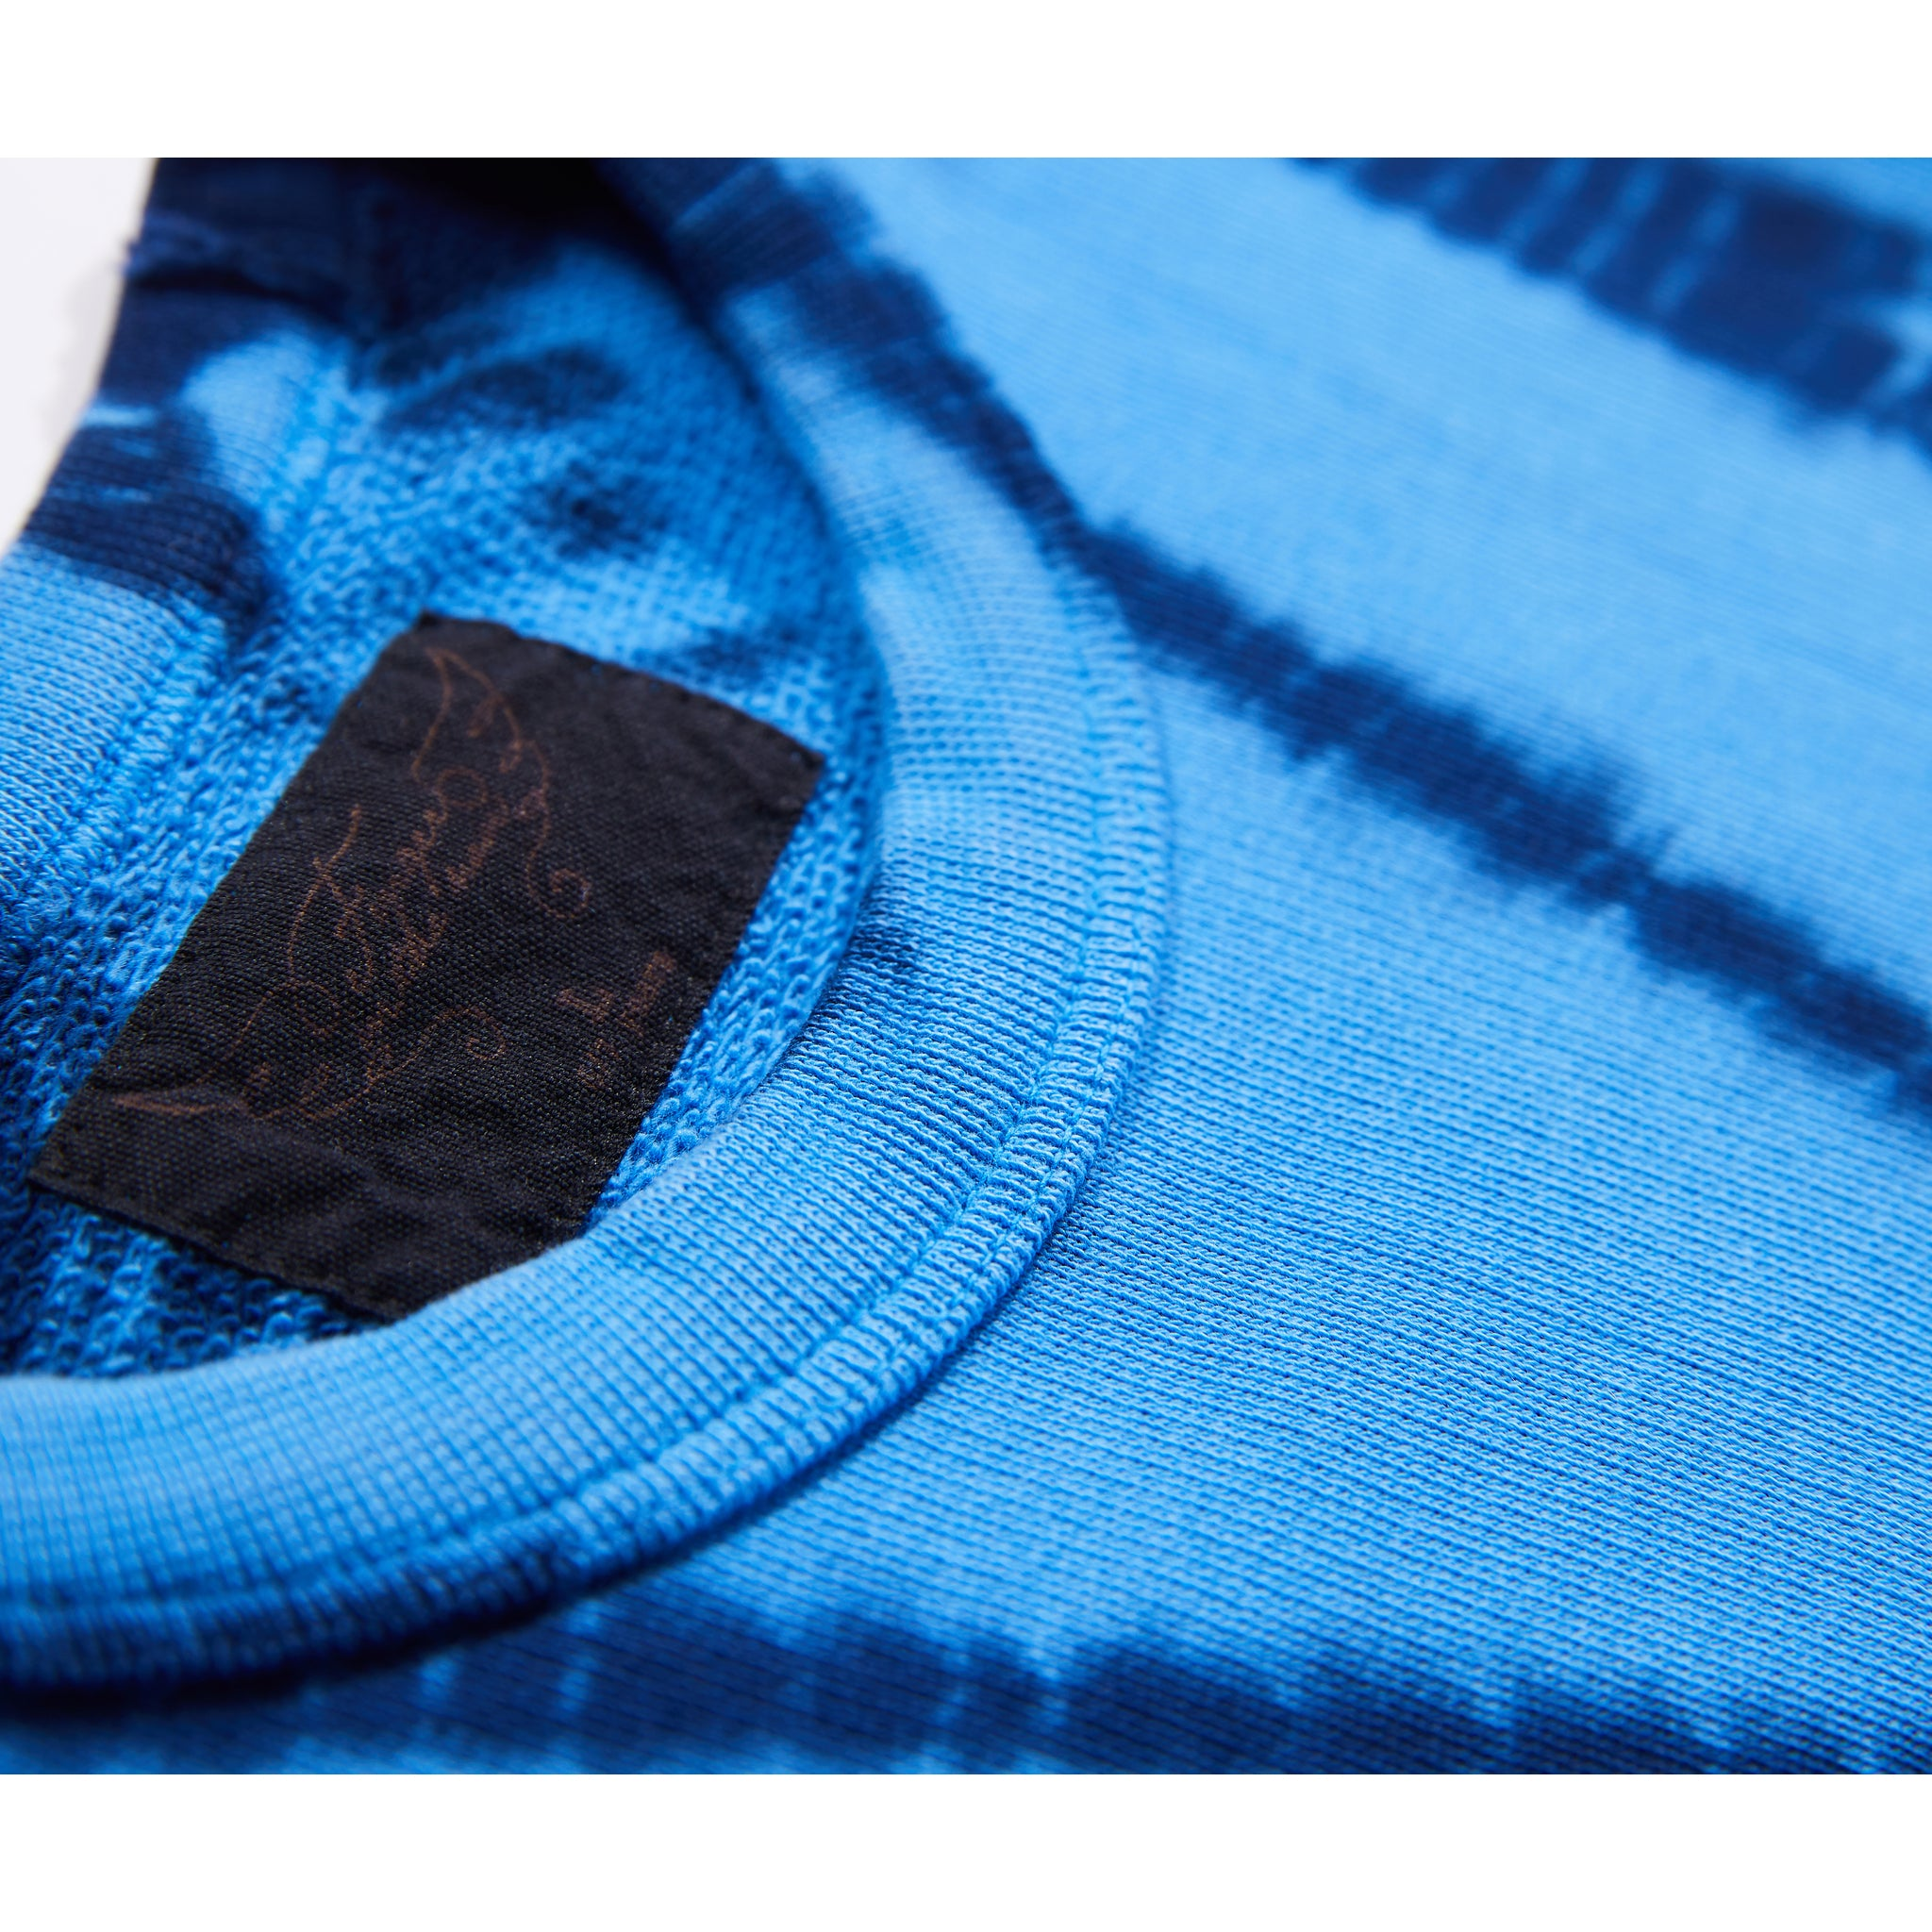 BRIAN Sharp Blue Bamboo Dye - Crew Neck Sweatshirt 3